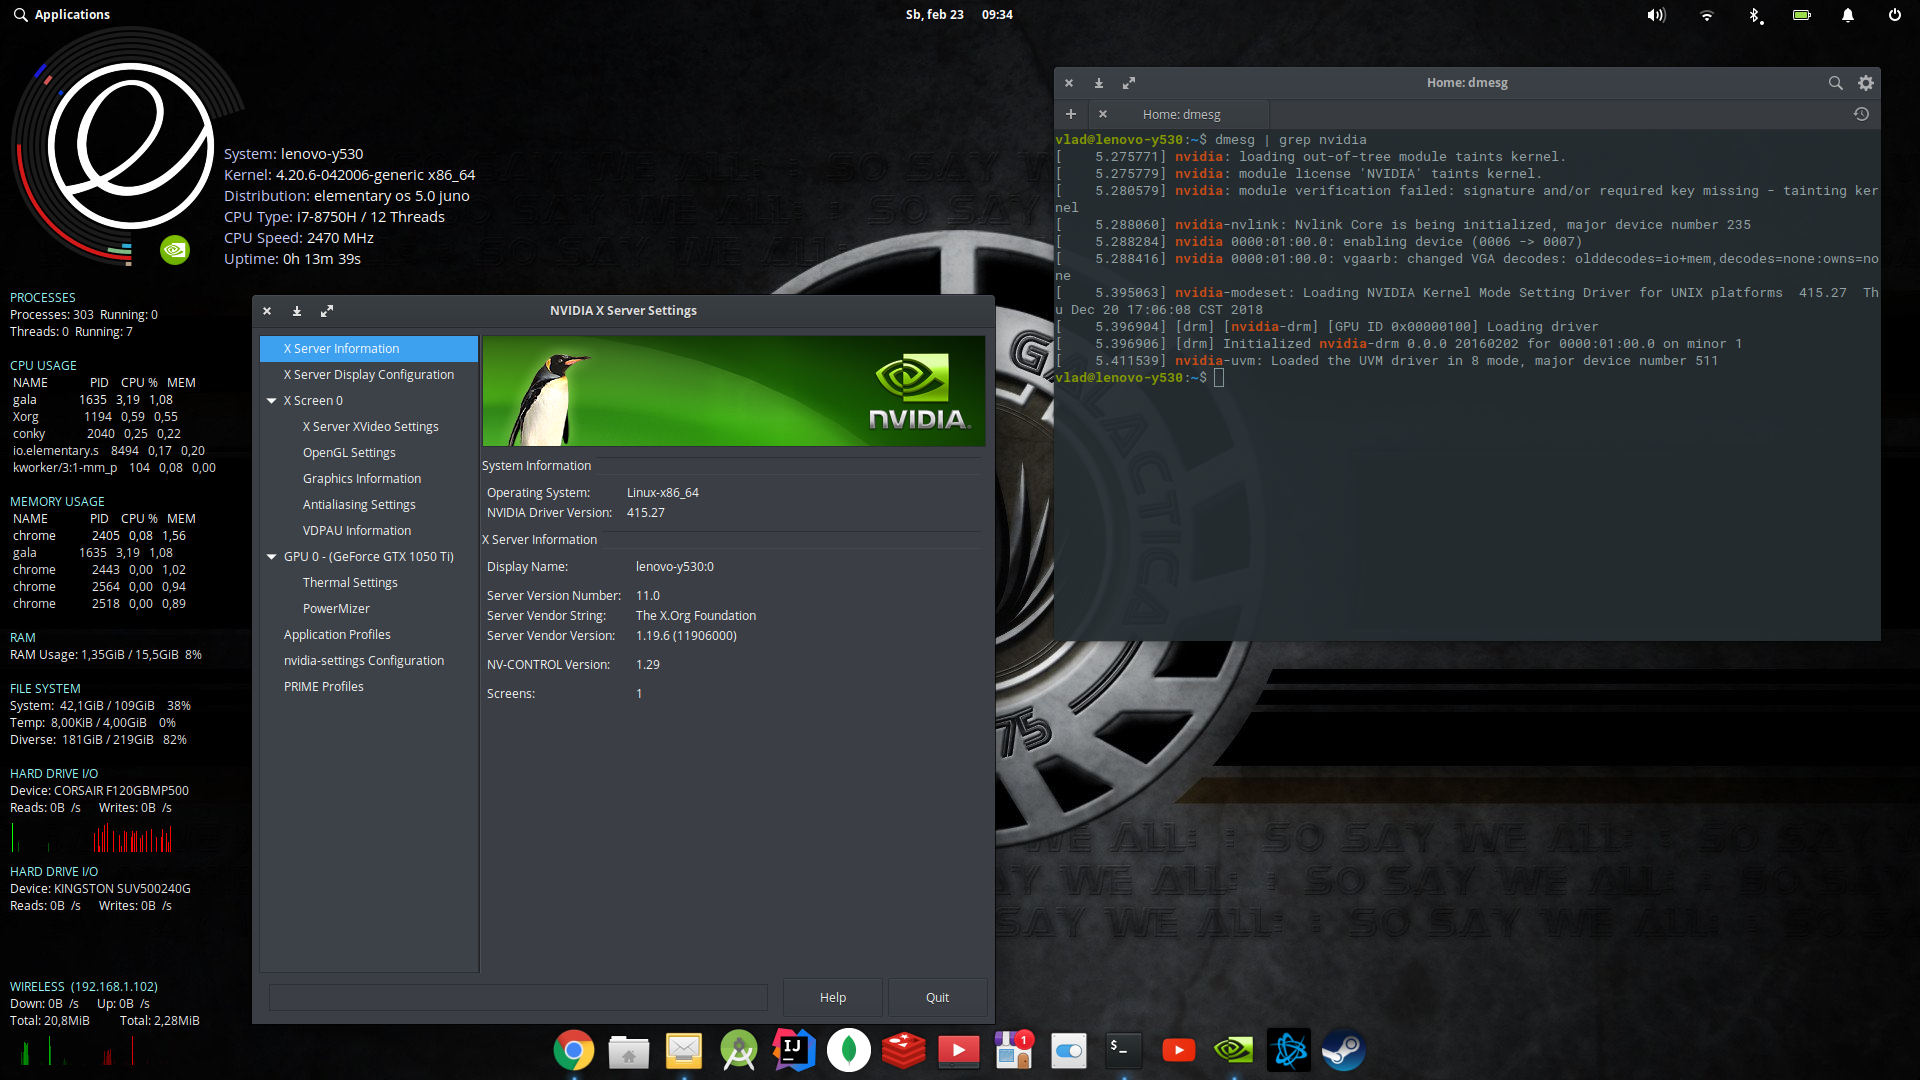 nvidia driver not working after kernel update